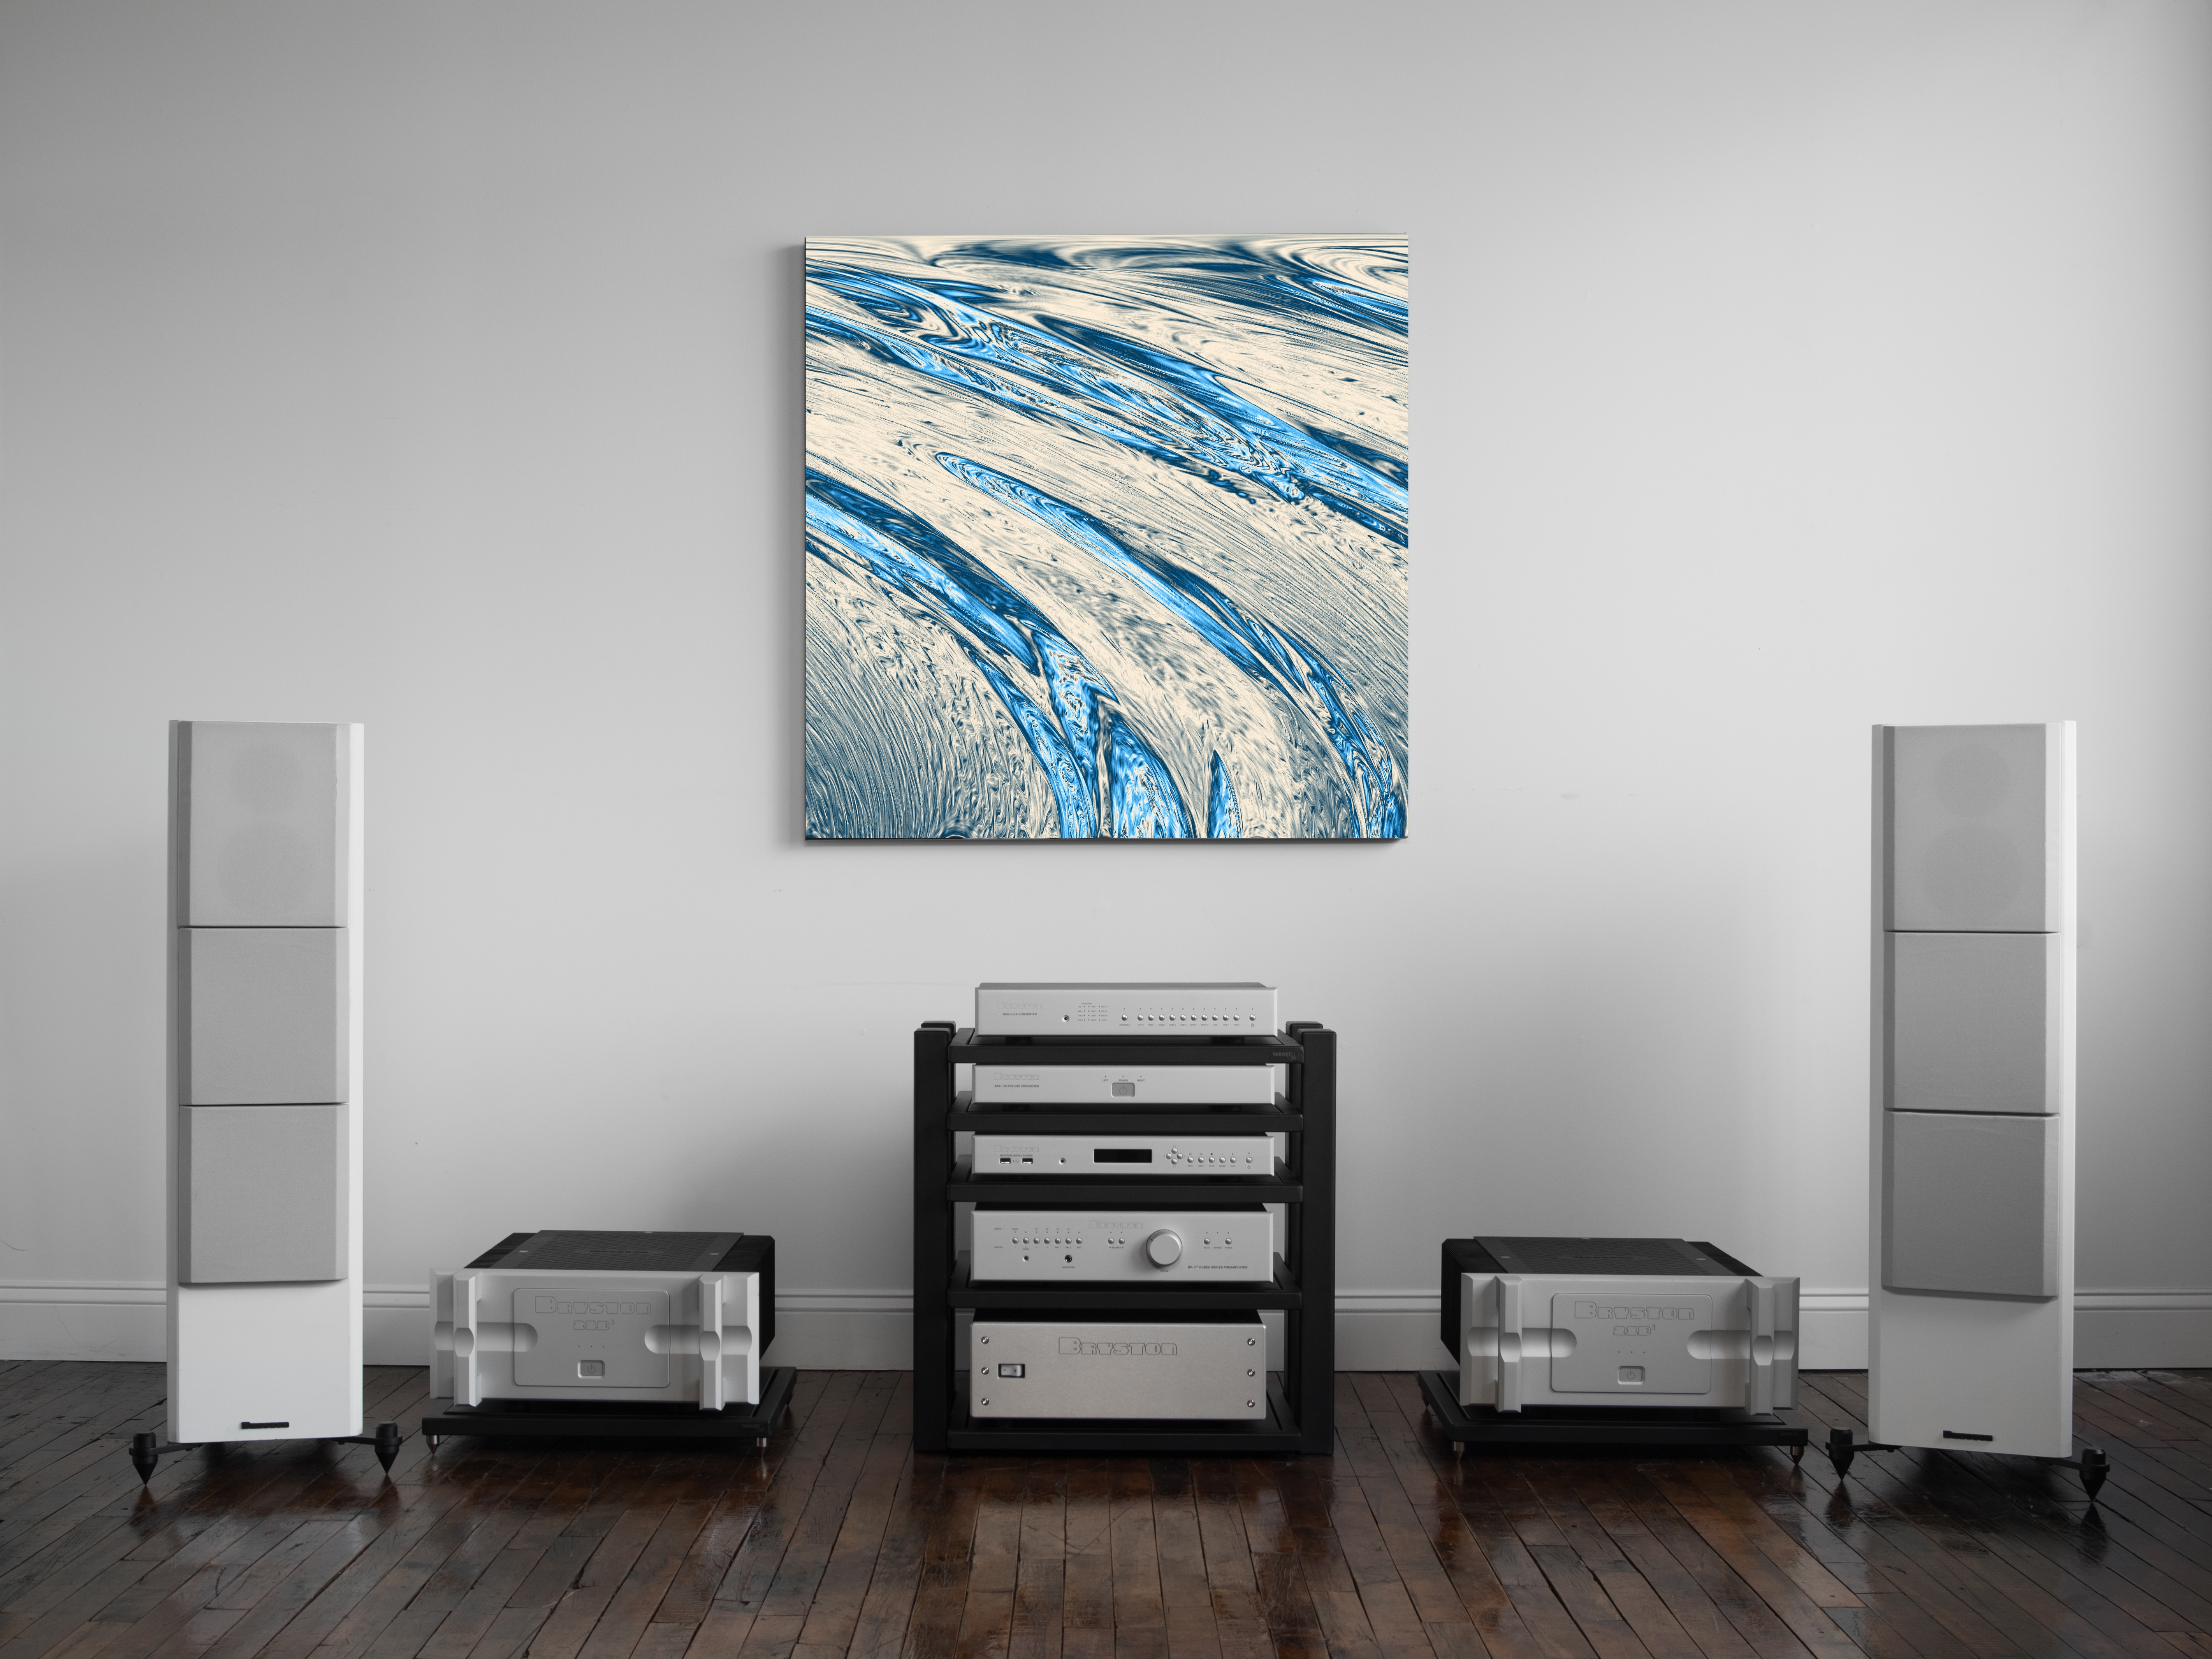 Bryston Active Loudspeaker Systems